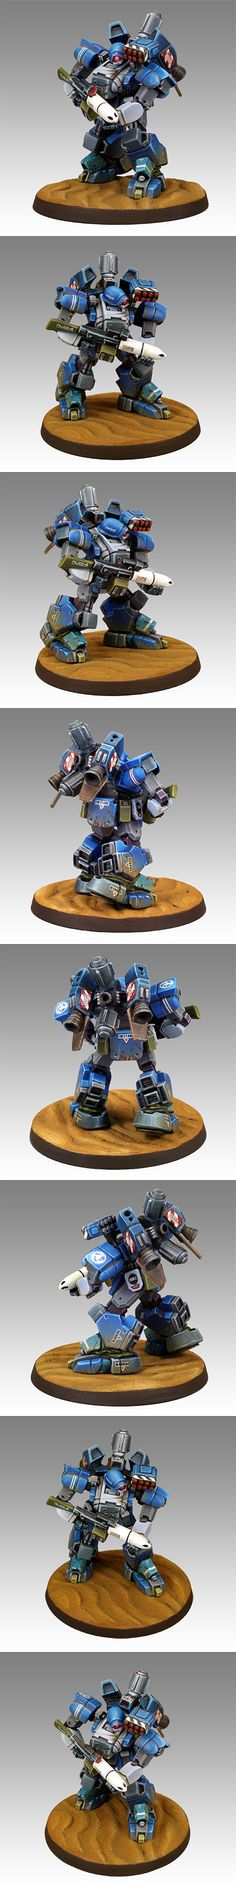 Nice Heavy Gear model - Chasseur Mark II Heavy Gear from Dream Pod 9, painted by Greg Perkins